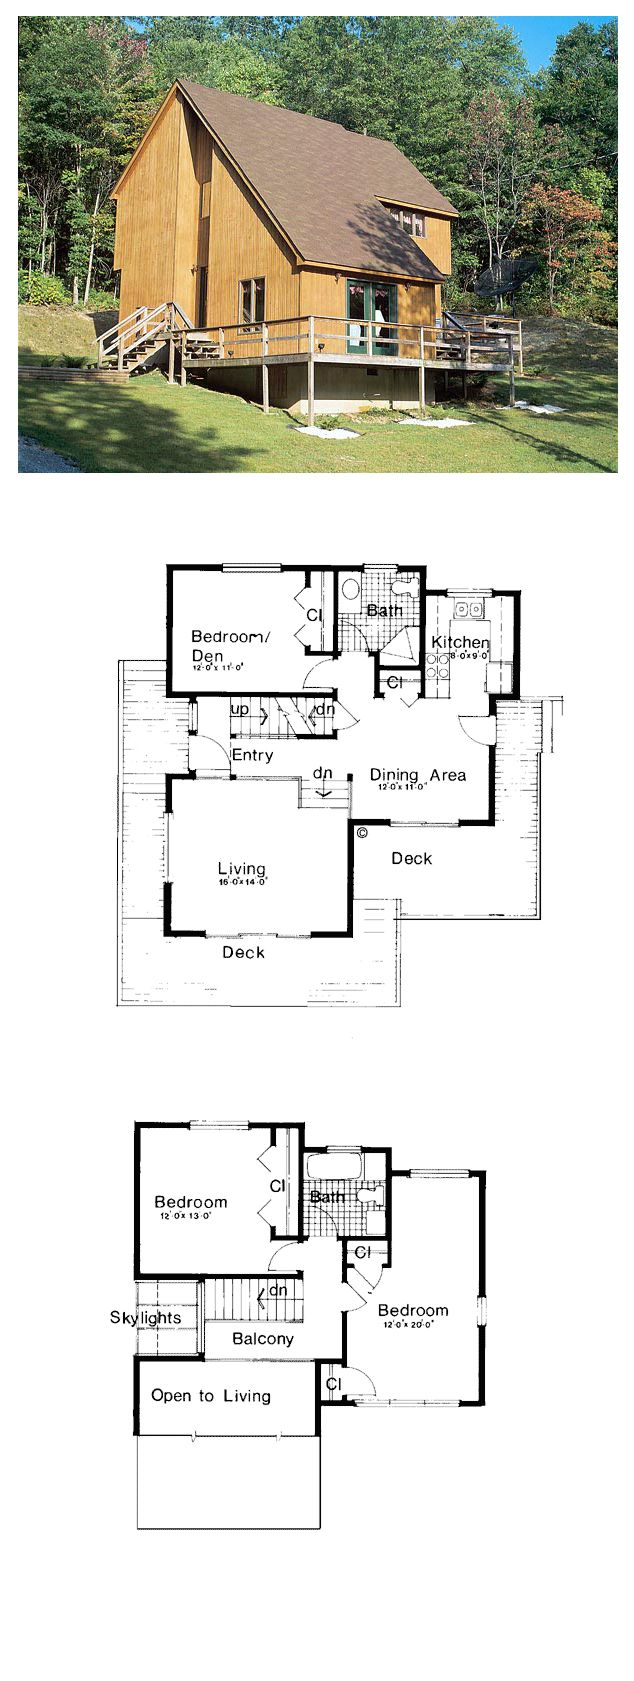 45 best saltbox house plans images on pinterest saltbox for Small saltbox house plans